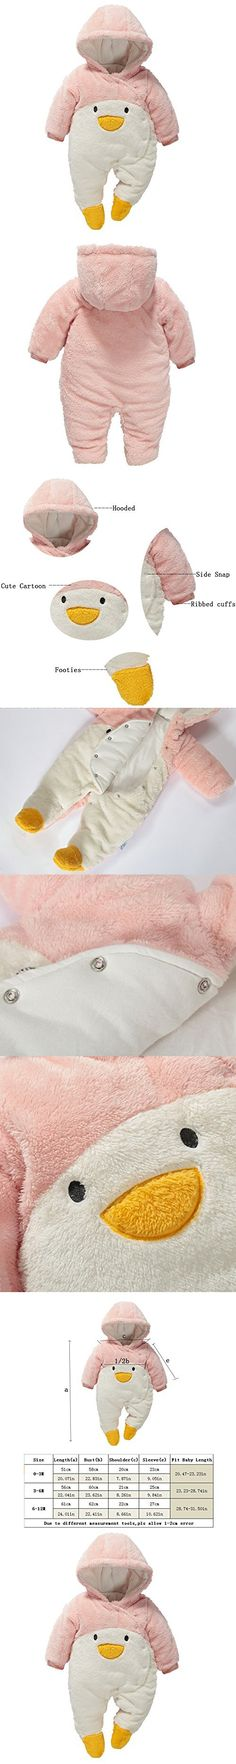 Fairy Baby Baby Boy Girl Winter Flannel Bunting Outfits Romper Outwear,6-12M,Pink Penguin